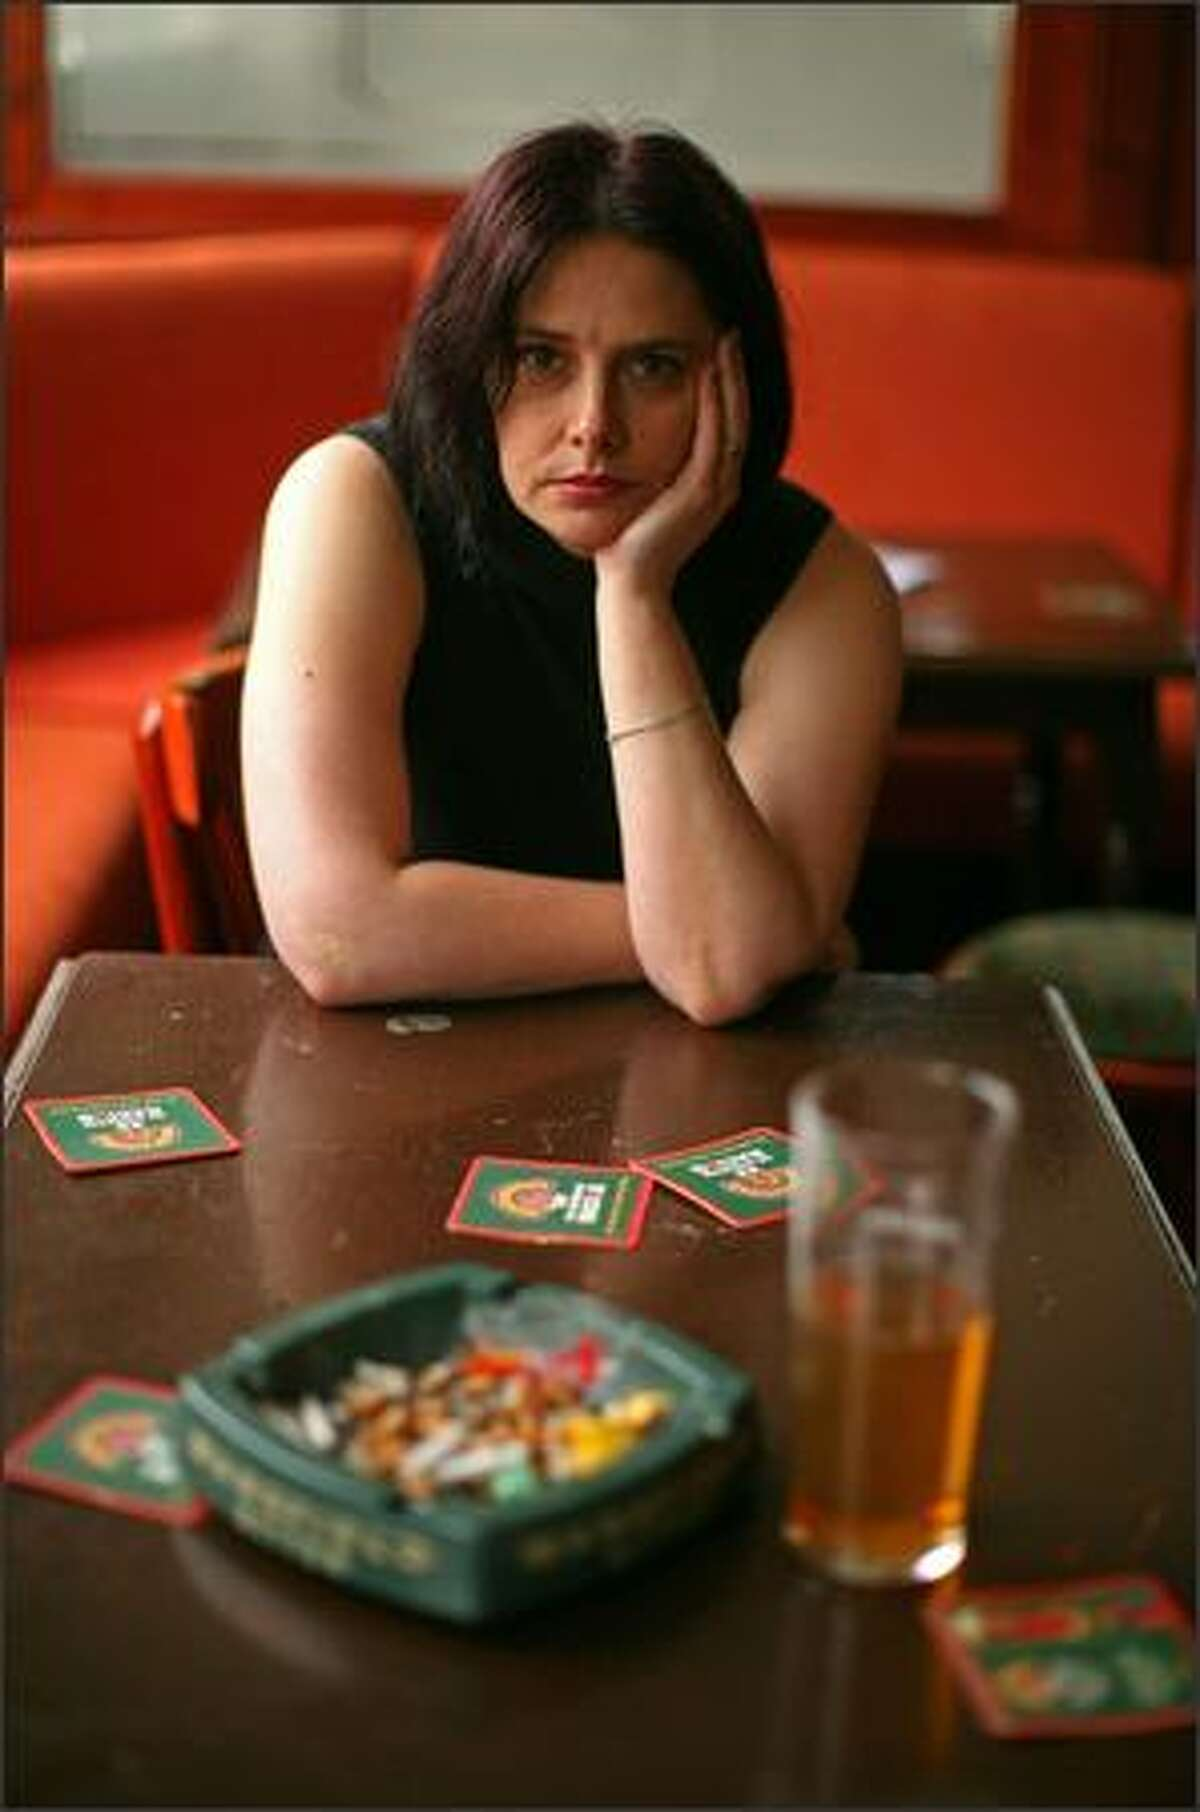 Kerry Fenton, of The Cutting Edge public house in Barnsley, England, poses at a table after her